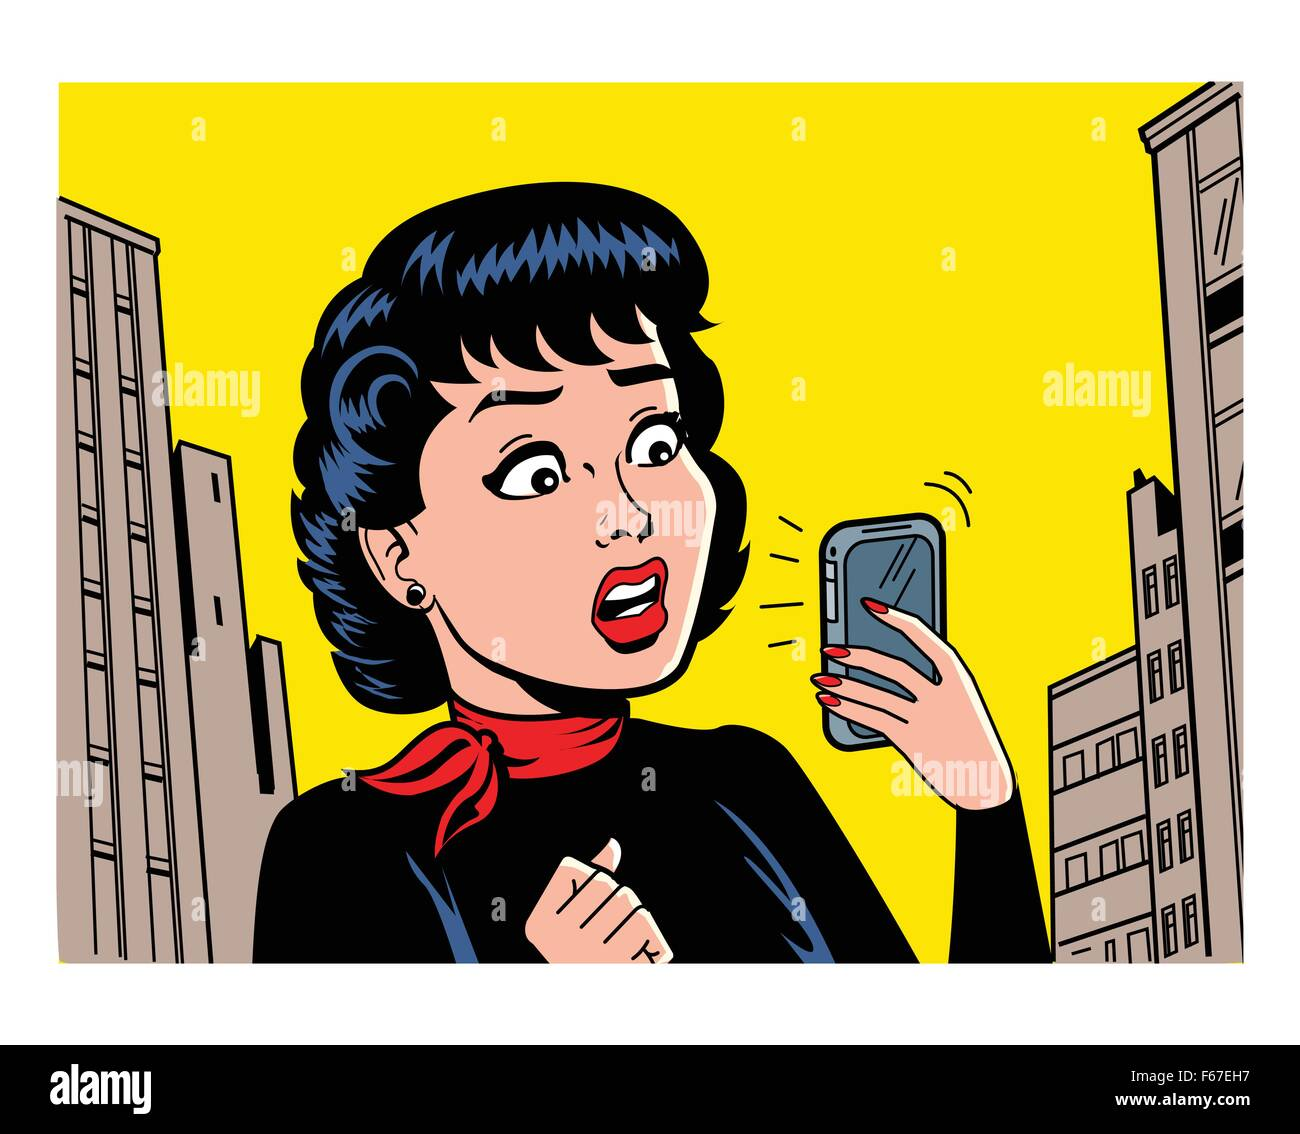 Ironic Satirical Illustration of a Retro Classic Comics Woman With a Modern Smartphone - Stock Vector